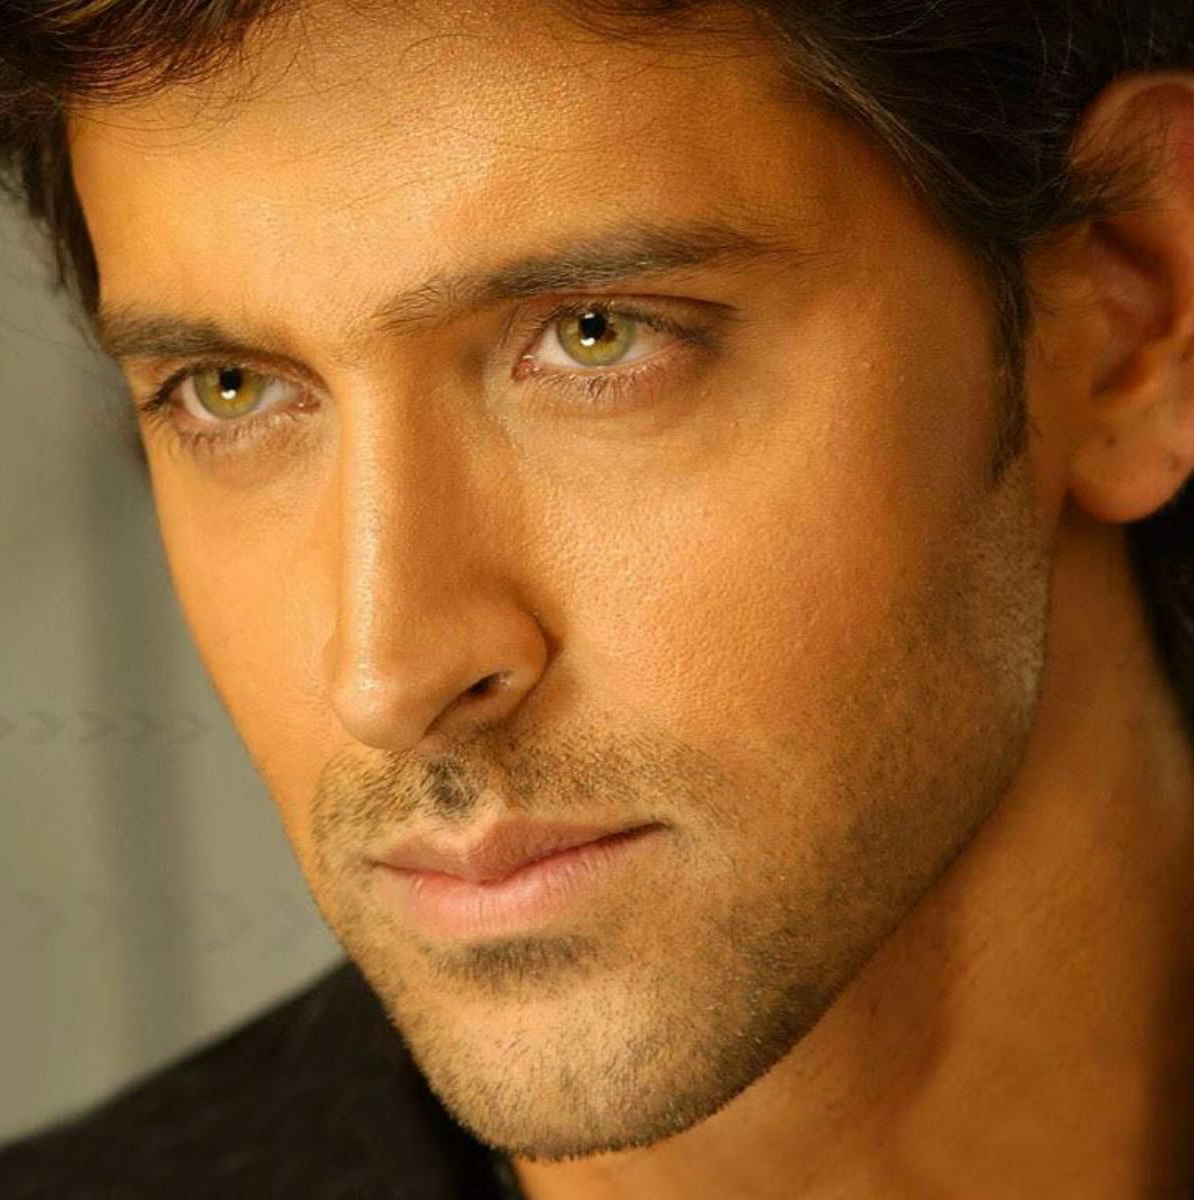 HRITHIK ROSHAN WALLPAPER PICS FOR WHATSAPP